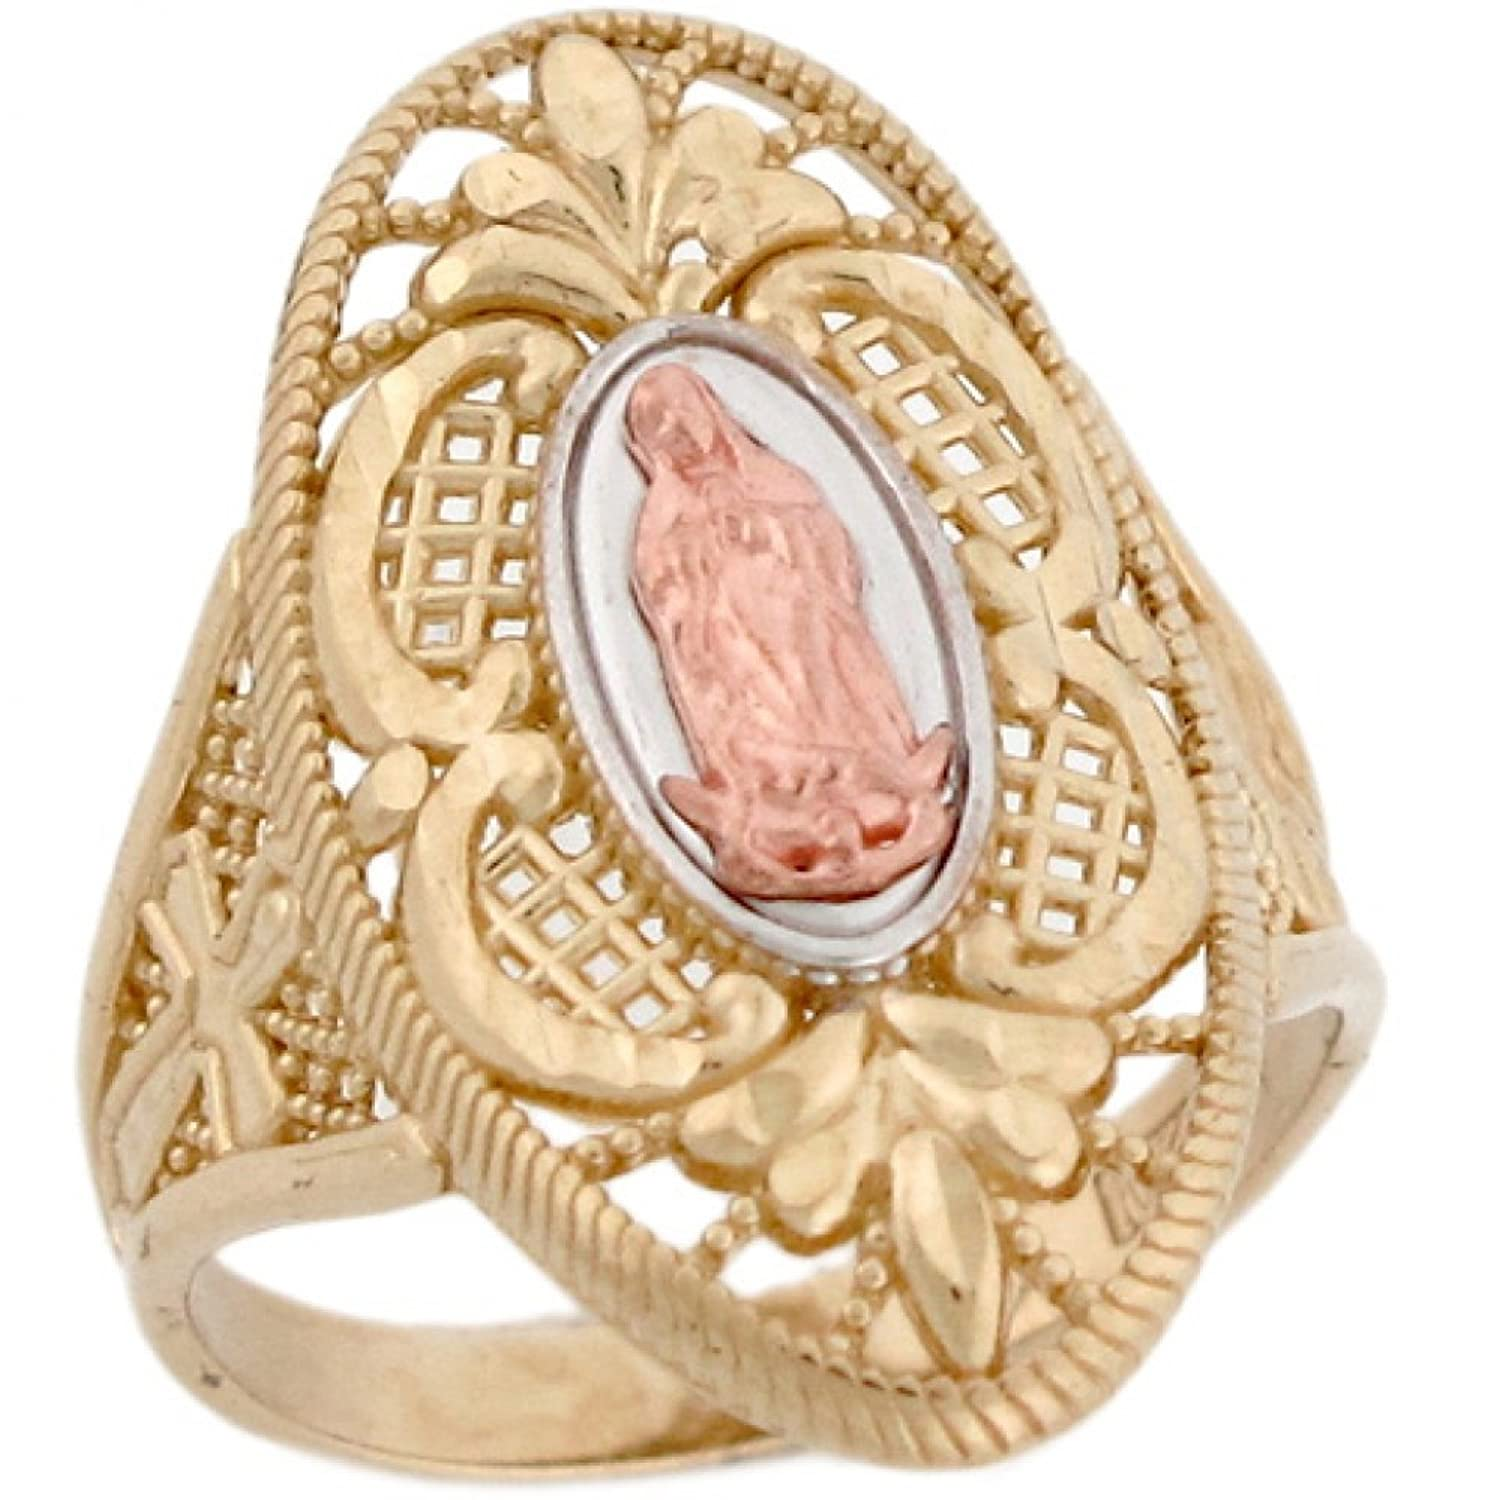 14k 3 Color Gold Virgin Mary Guadalupe Cross on The Sides Unique Ring